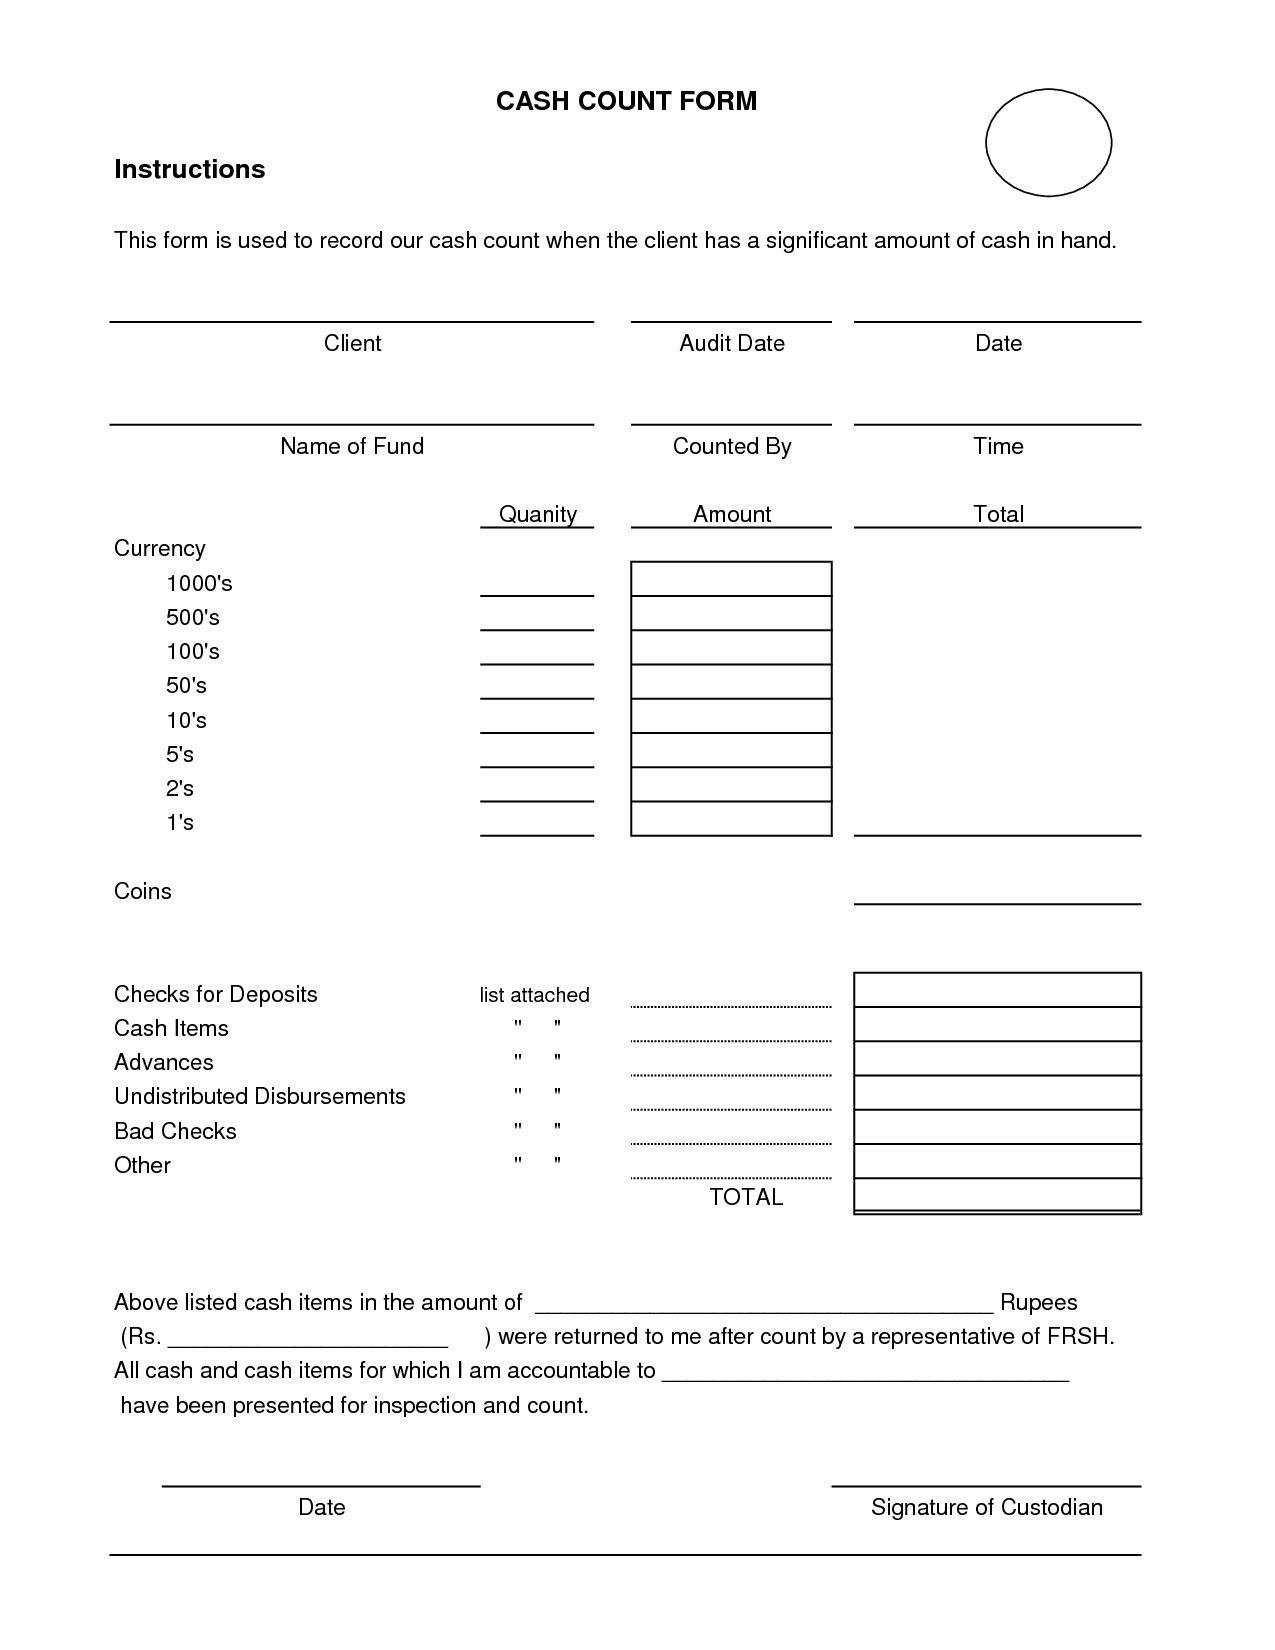 Daily Cash Sheet Template Count Audit Working Papers